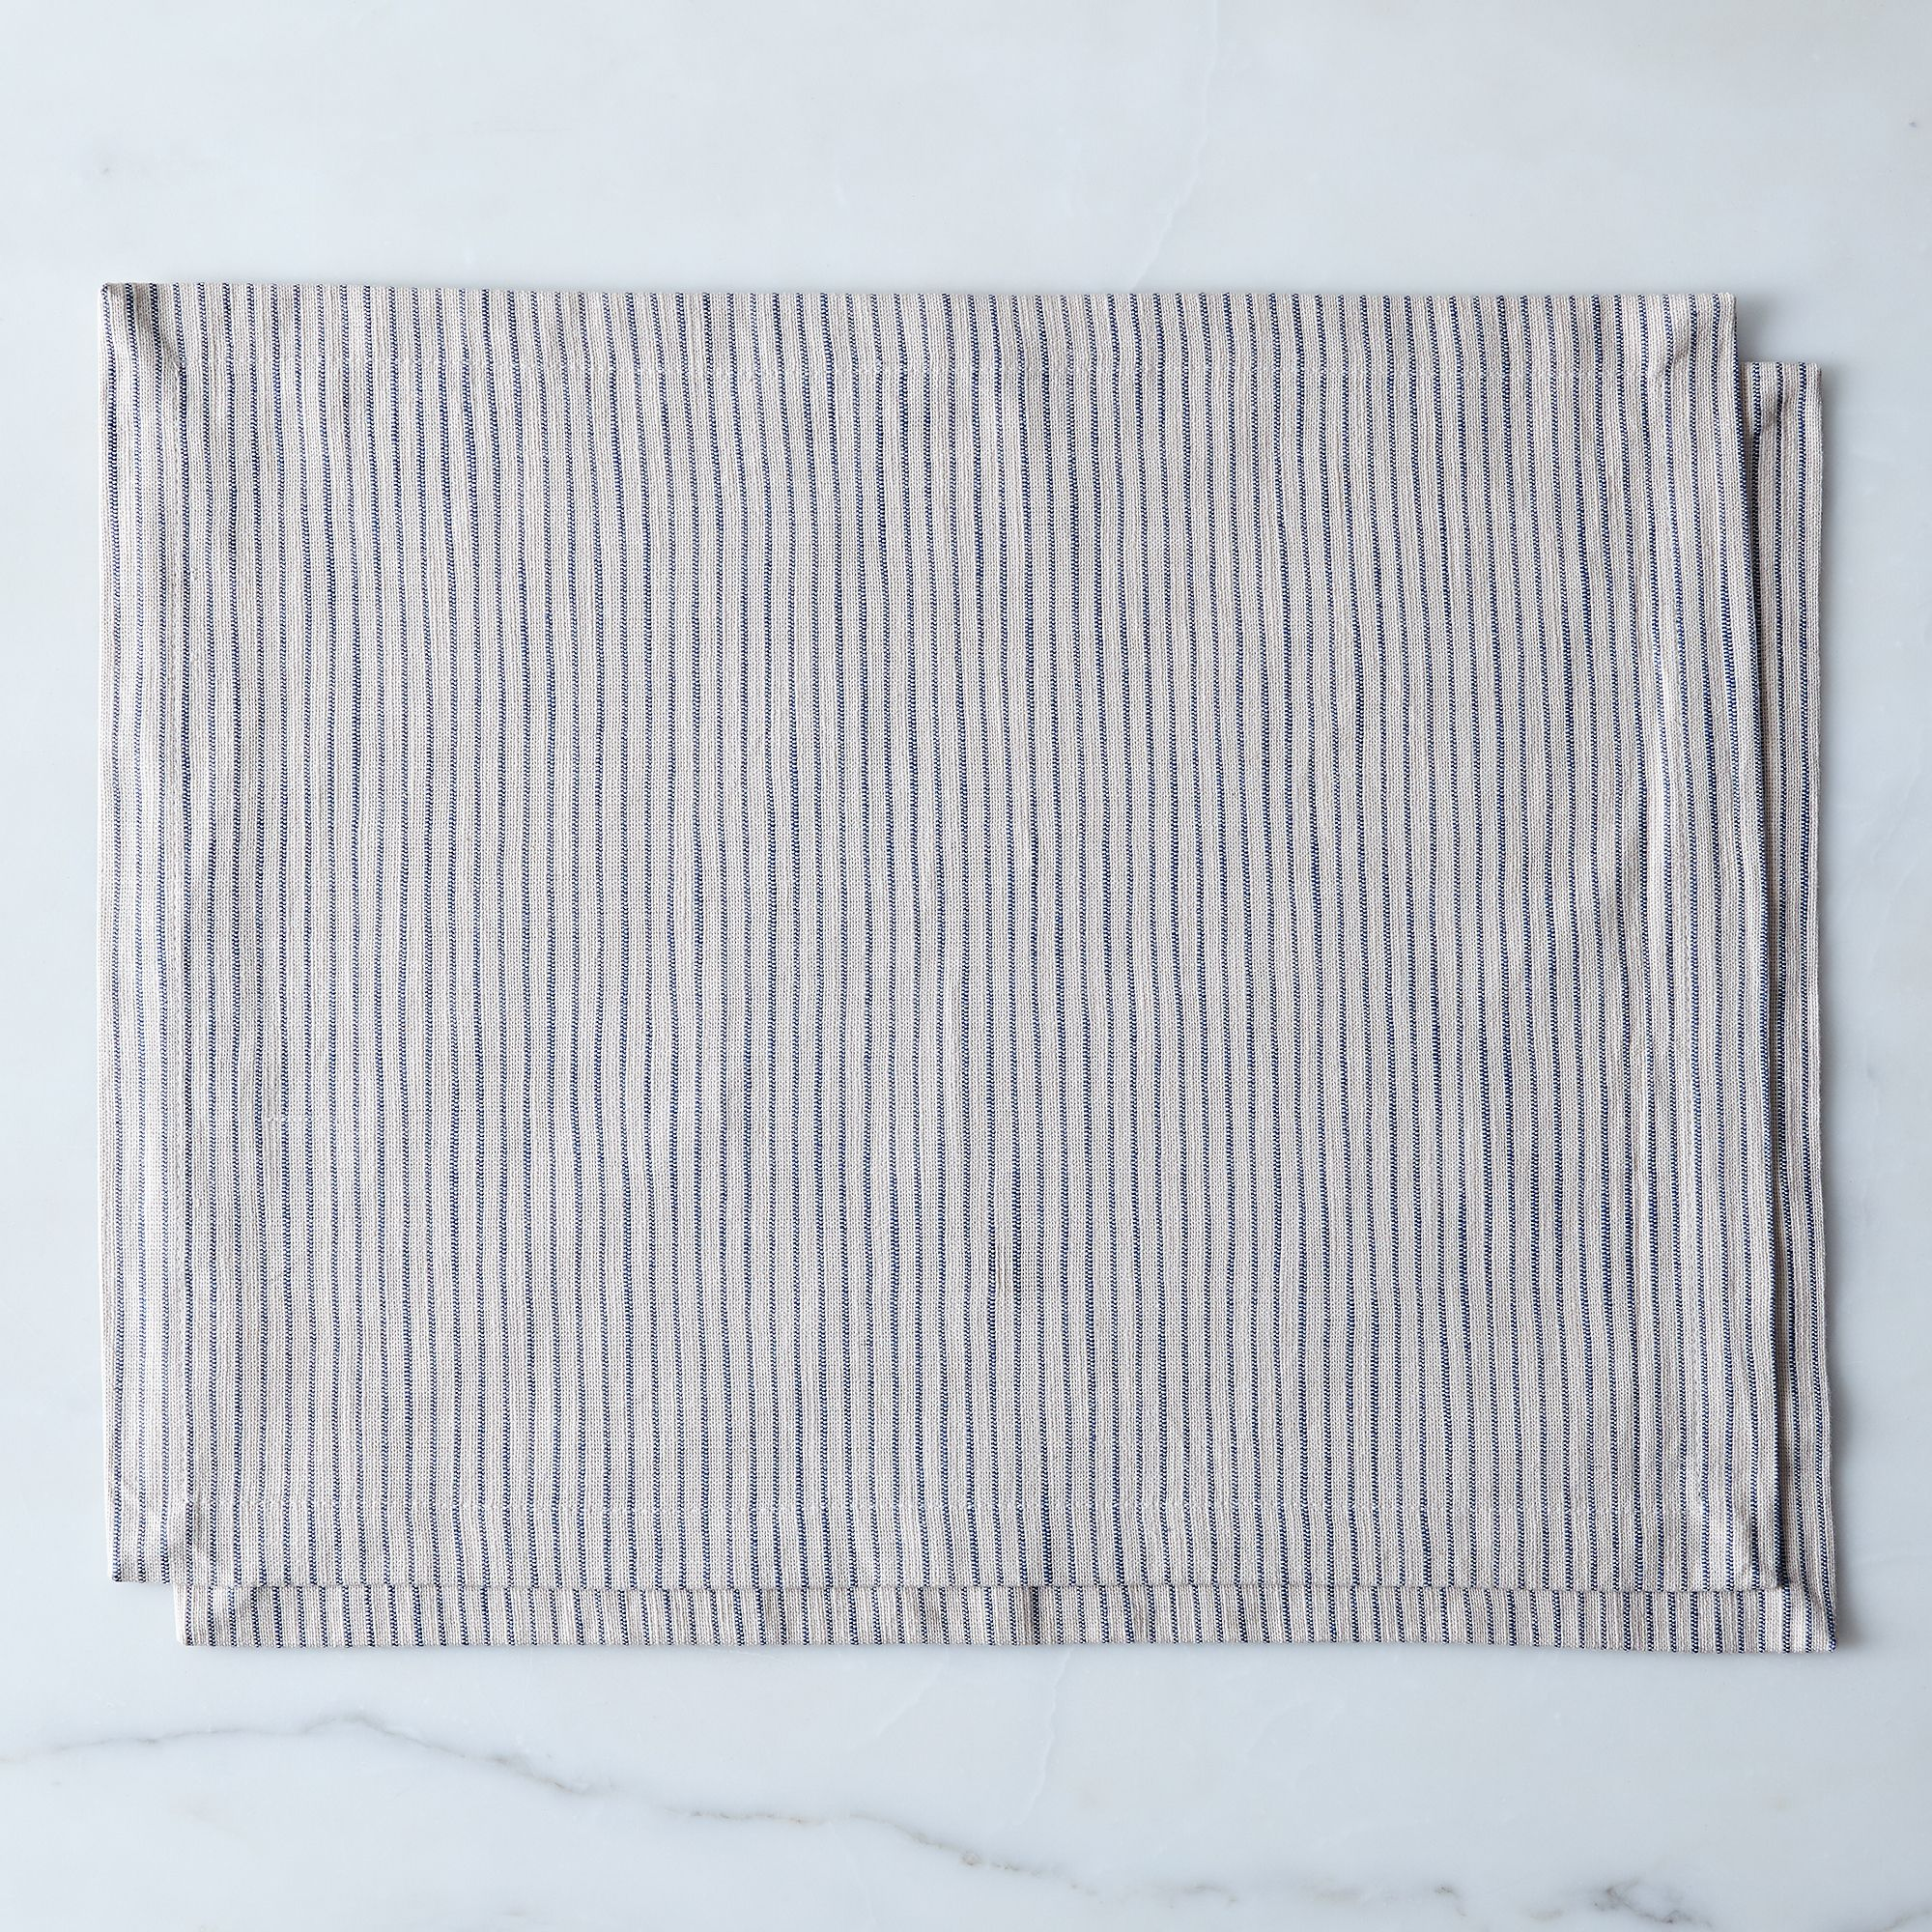 47910737 6452 4a11 94e6 05caf2ce5306  2016 1111 food52 table linens striped placemats set of 2 silo rocky luten 0137